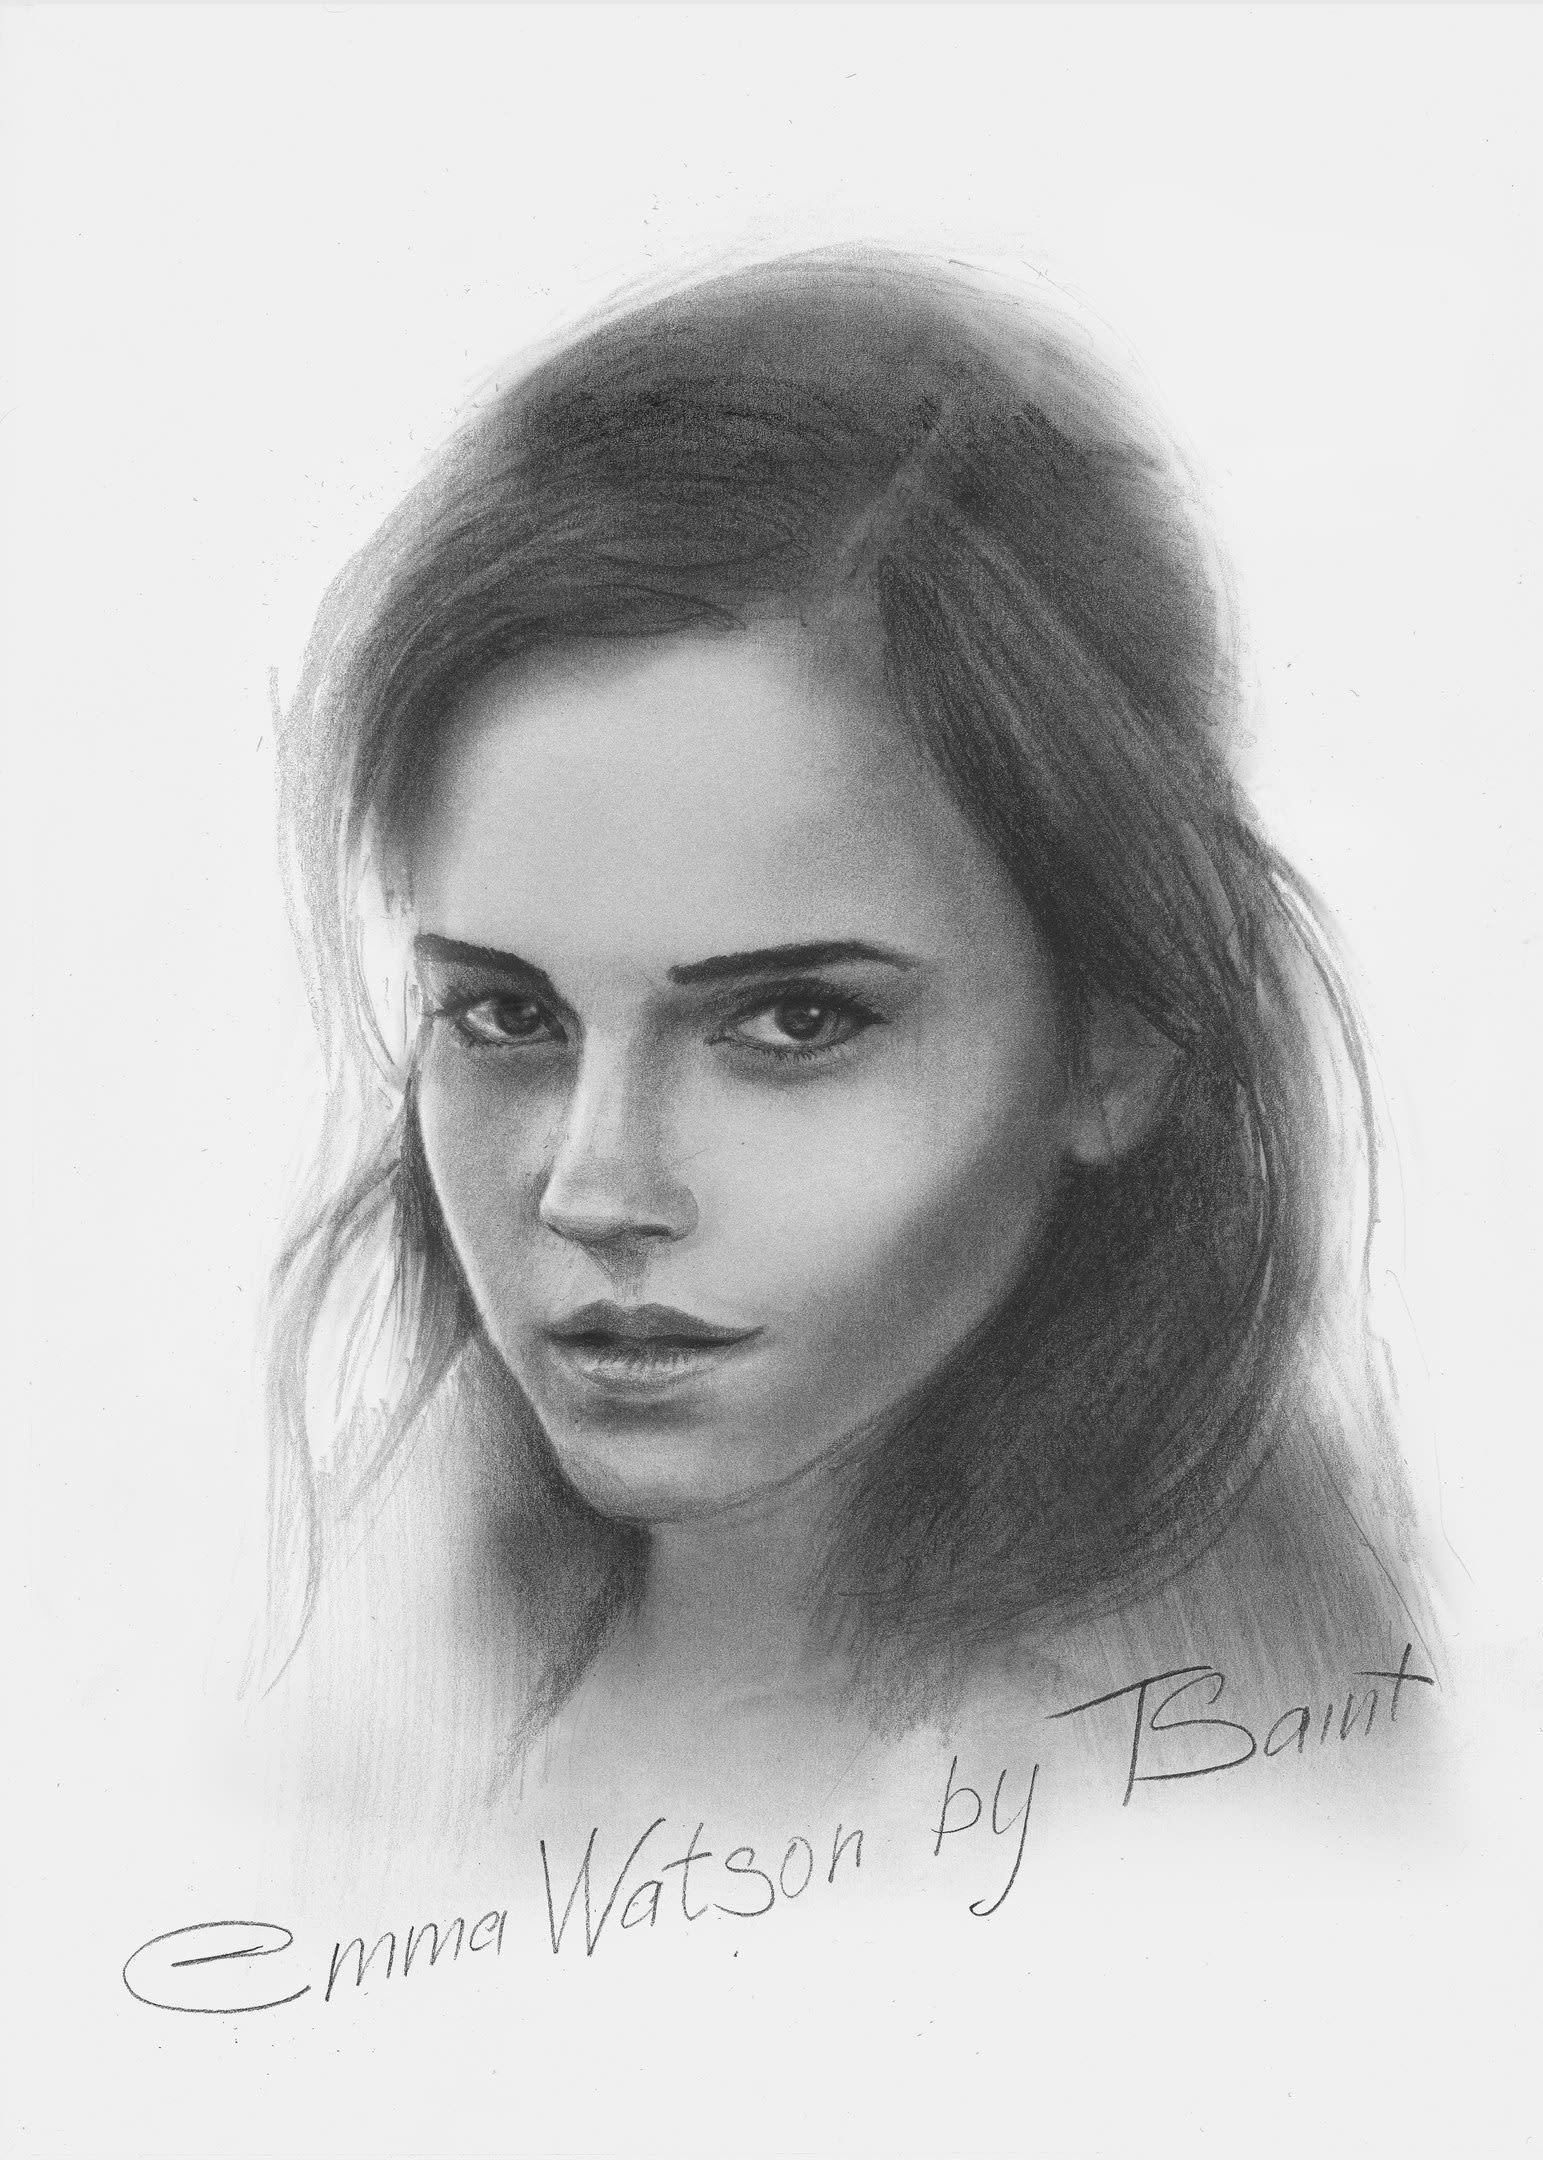 I will draw a realistic pencil sketch portrait from a photo